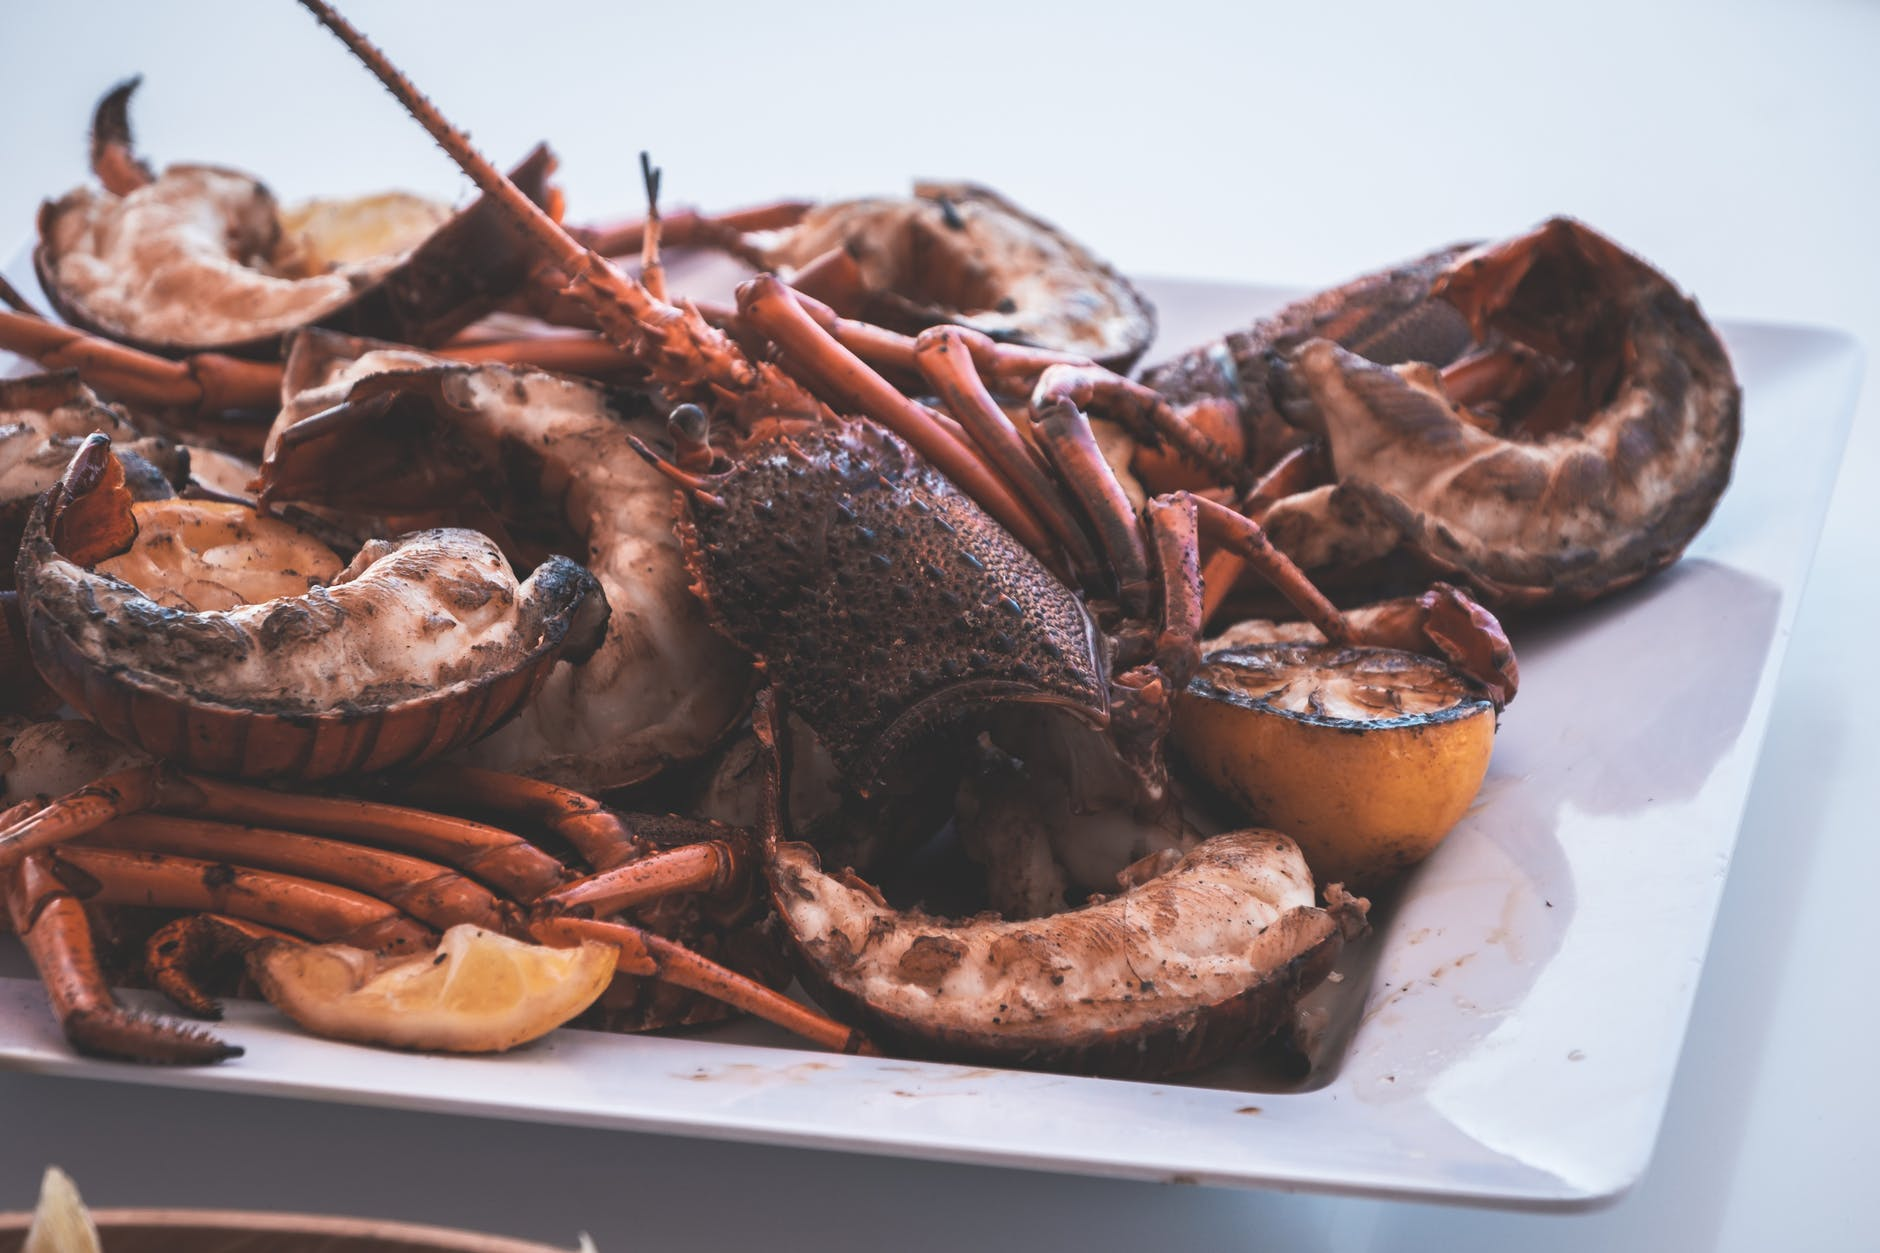 appetizing roasted lobsters served on plate in restaurant